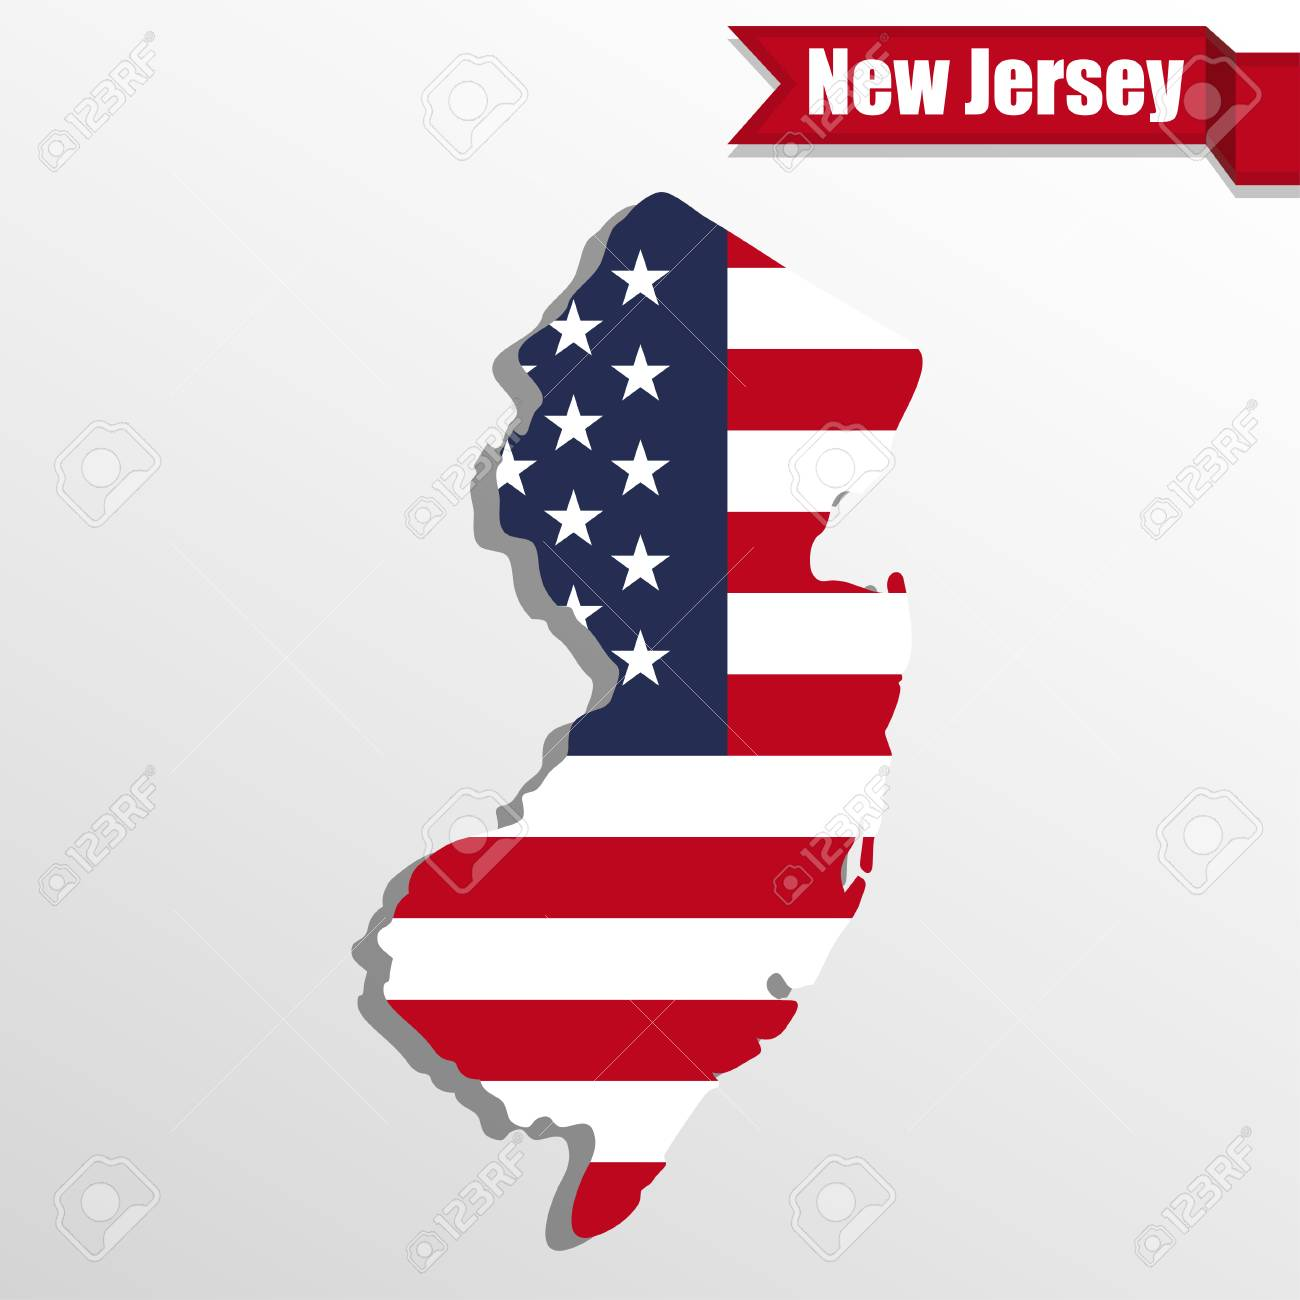 New Jersey State Map With Us Flag Inside And Ribbon Royalty Free